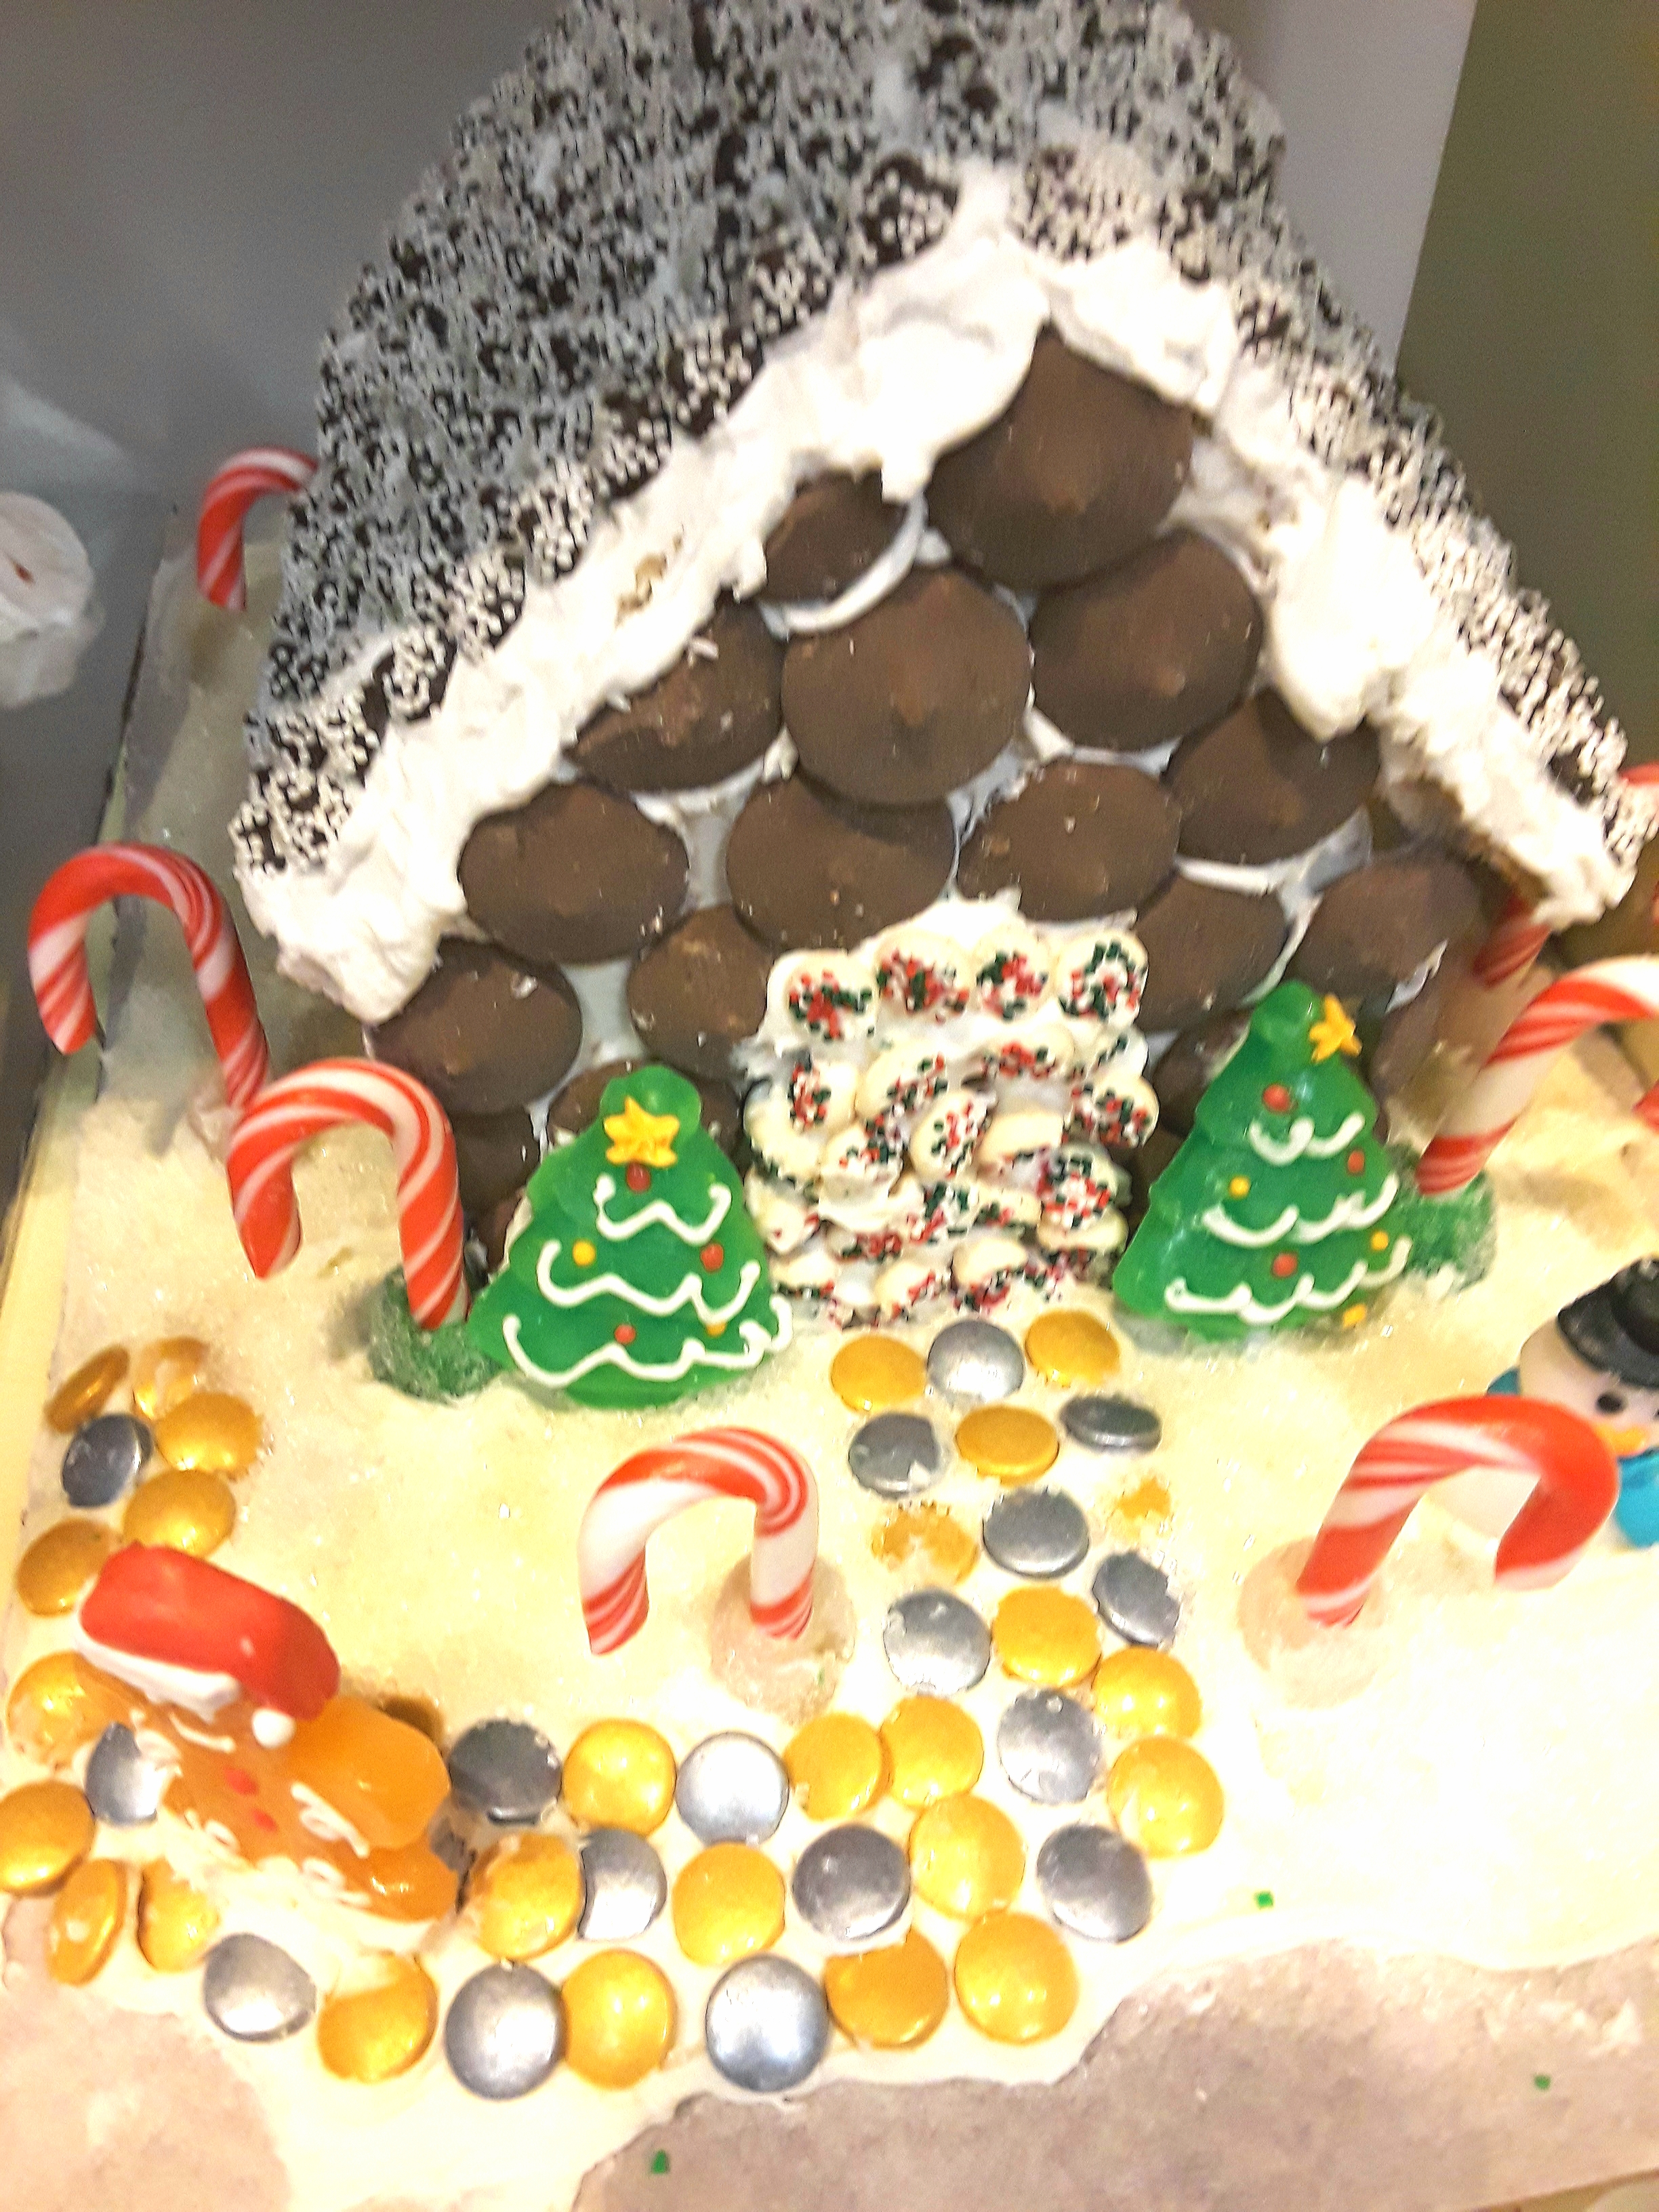 A gingerbread house is trimmed with snow caps, kisses, and candy canes